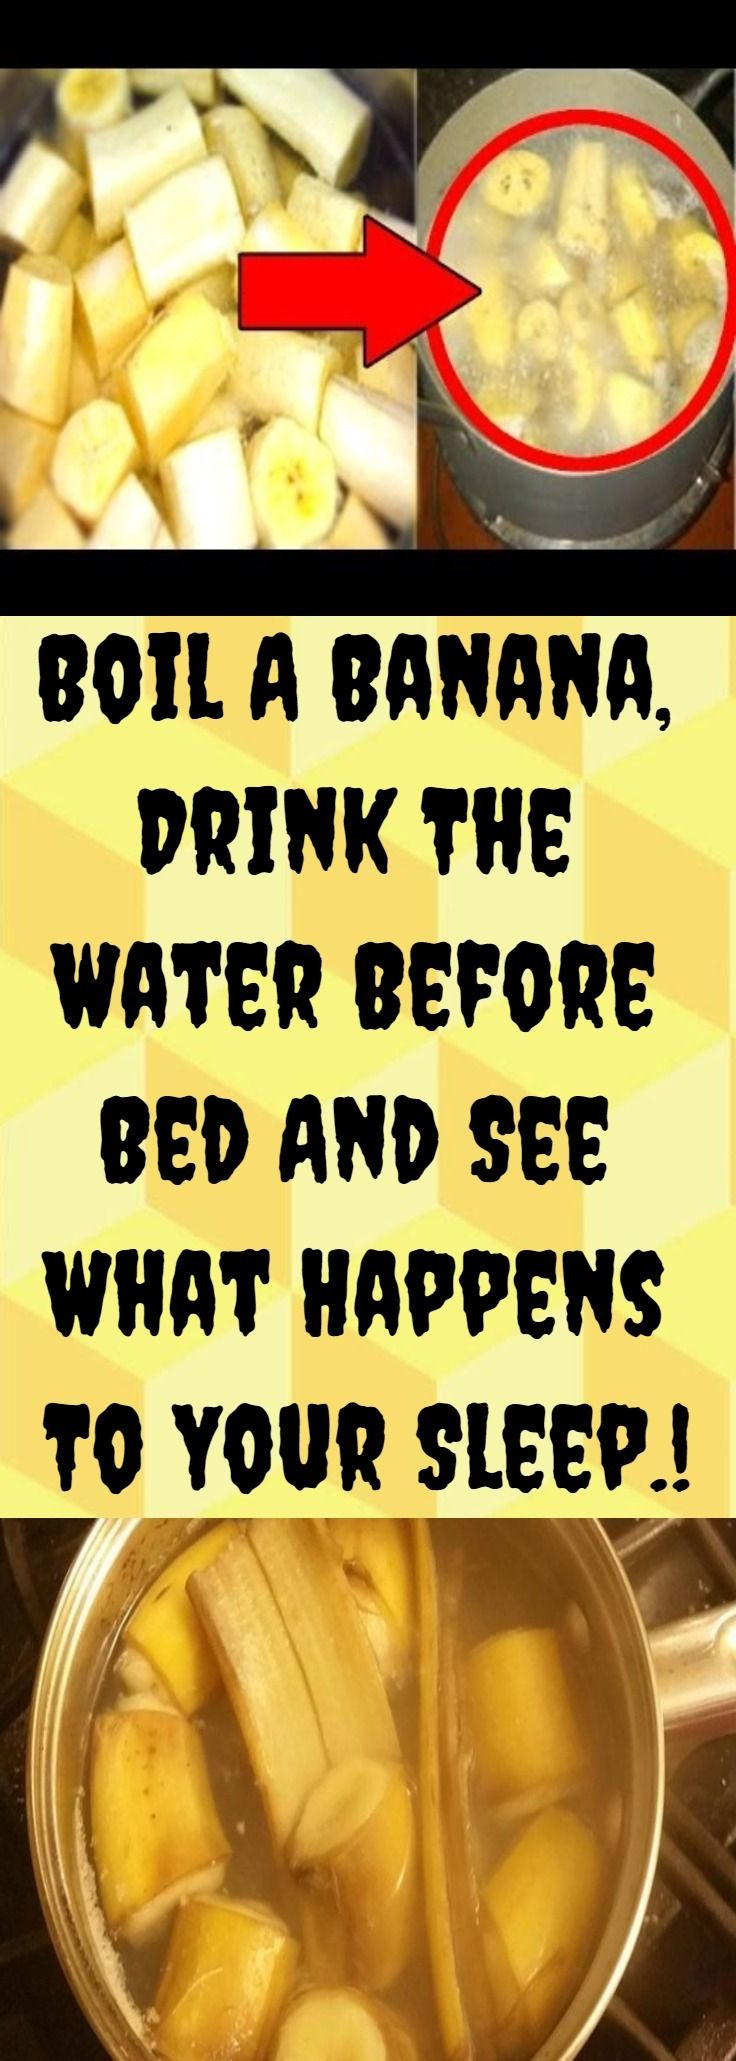 Boil A Banana, Drink The Water Before Bed And See What